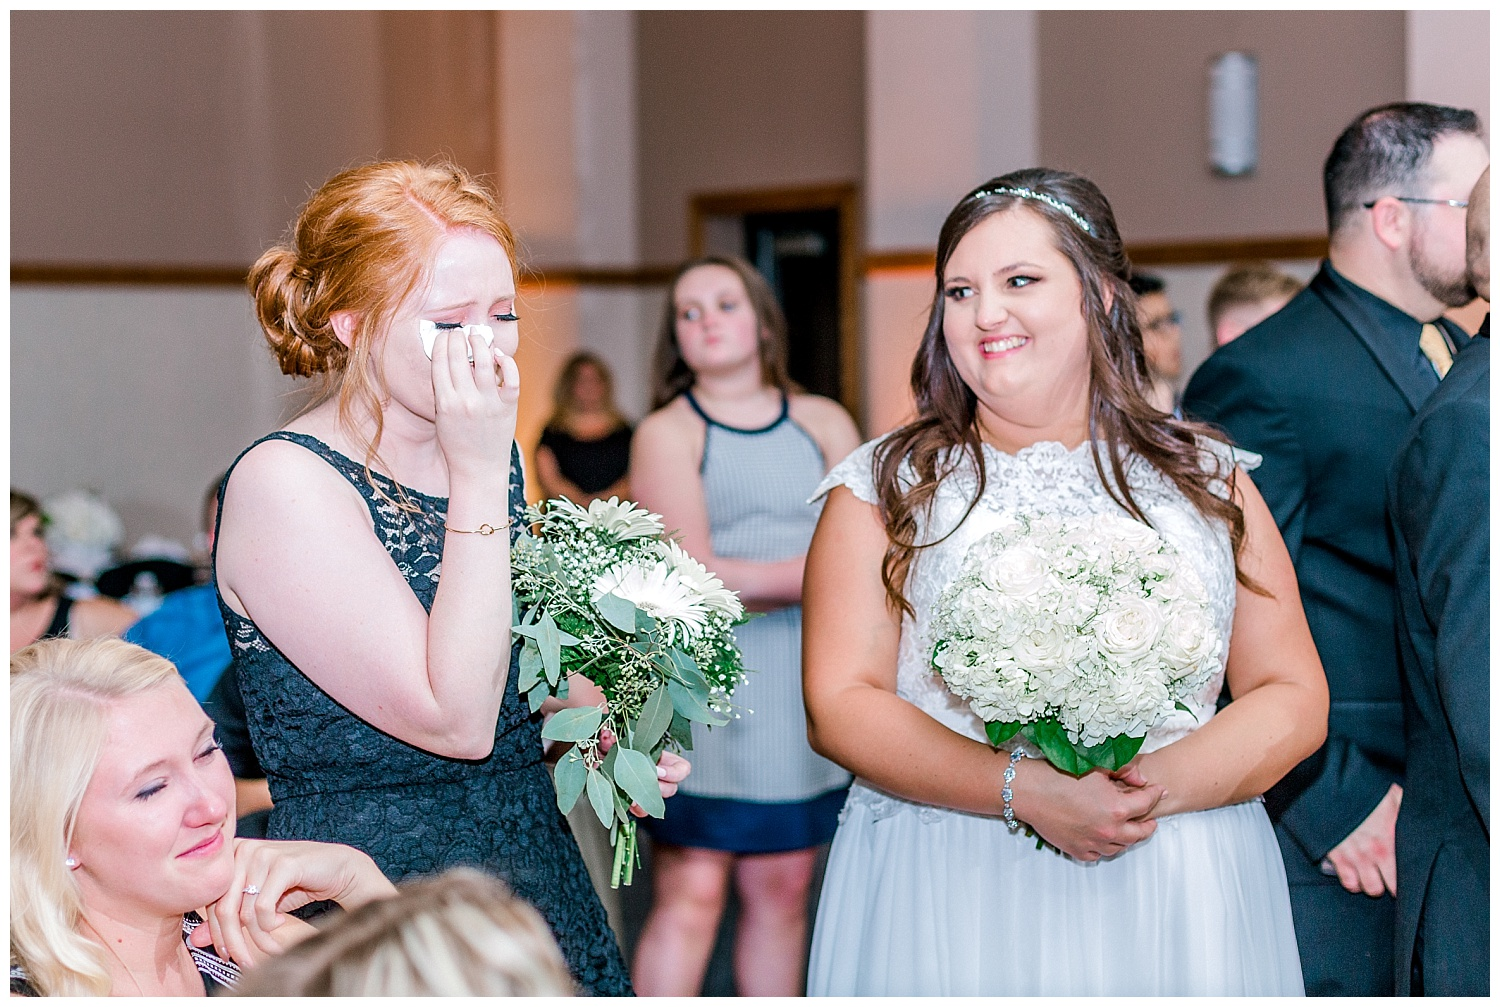 A Black and Gold Catholic Church Wedding in Wilkes Barre Pennsylvania by lehigh valley pennsylvania based wedding and lifestyle photographer Jeannie Lytle of Lytle Photography   Company (48).jpg